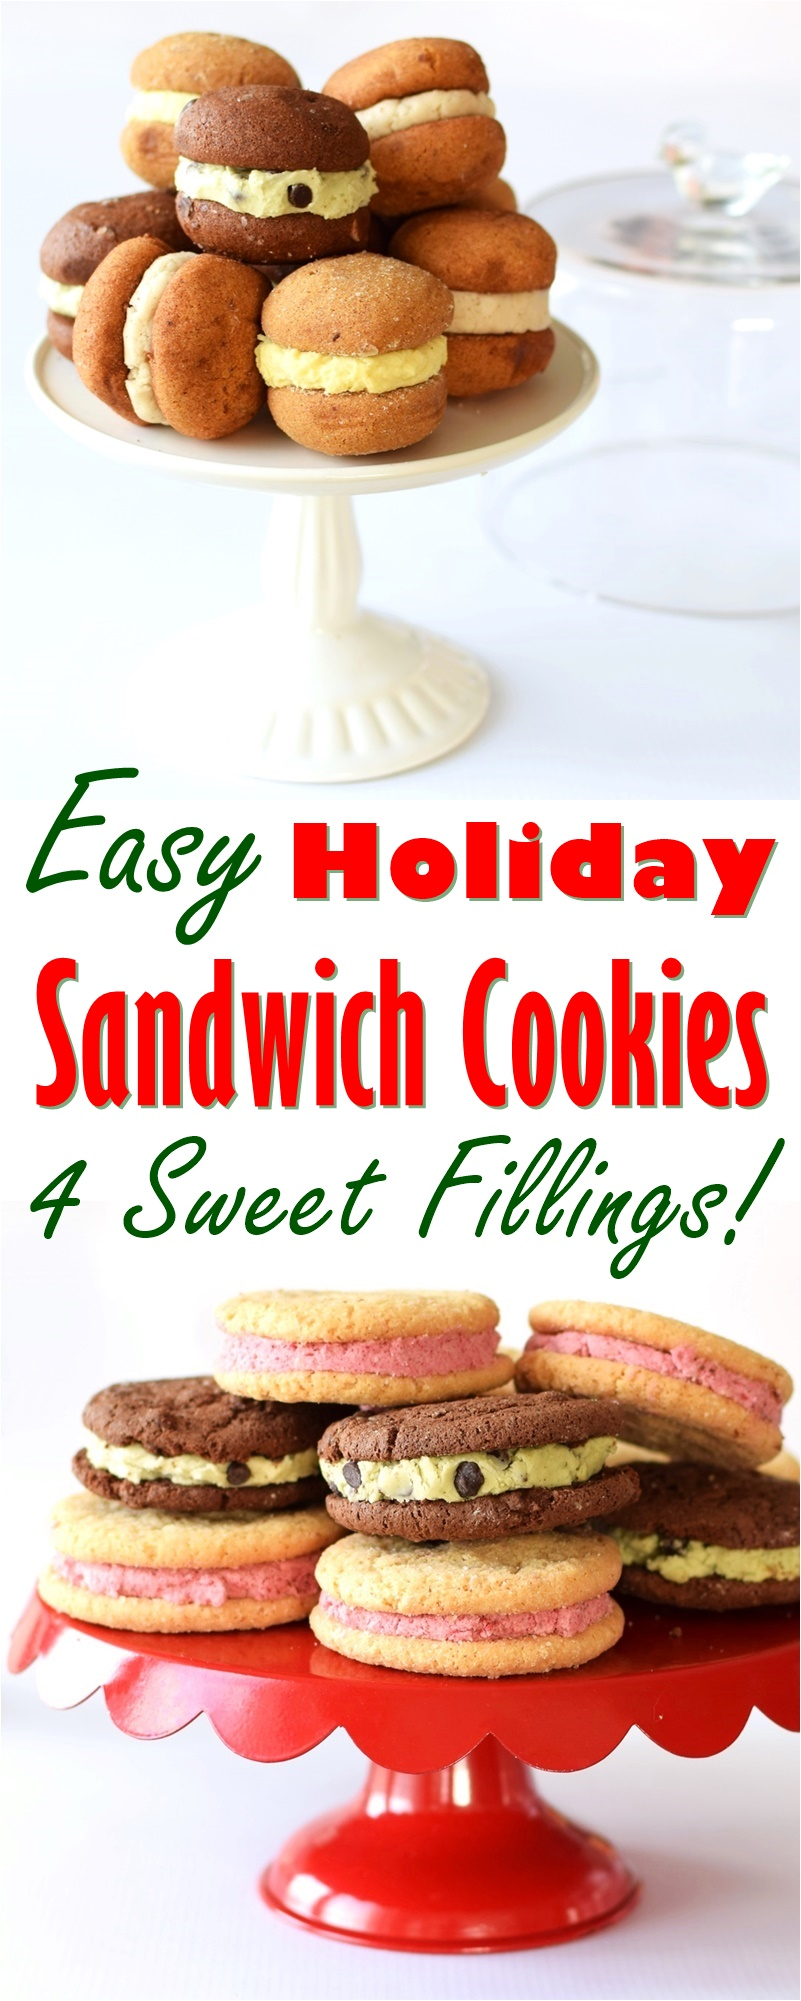 Easy Holiday Sandwich Cookies - Mint Chocolate Chip, Lemon-Iced Gingerbread, Berry Sugars, and Maple-Doodle Recipes (dairy-free, gluten-free, vegan & top allergen-free!)